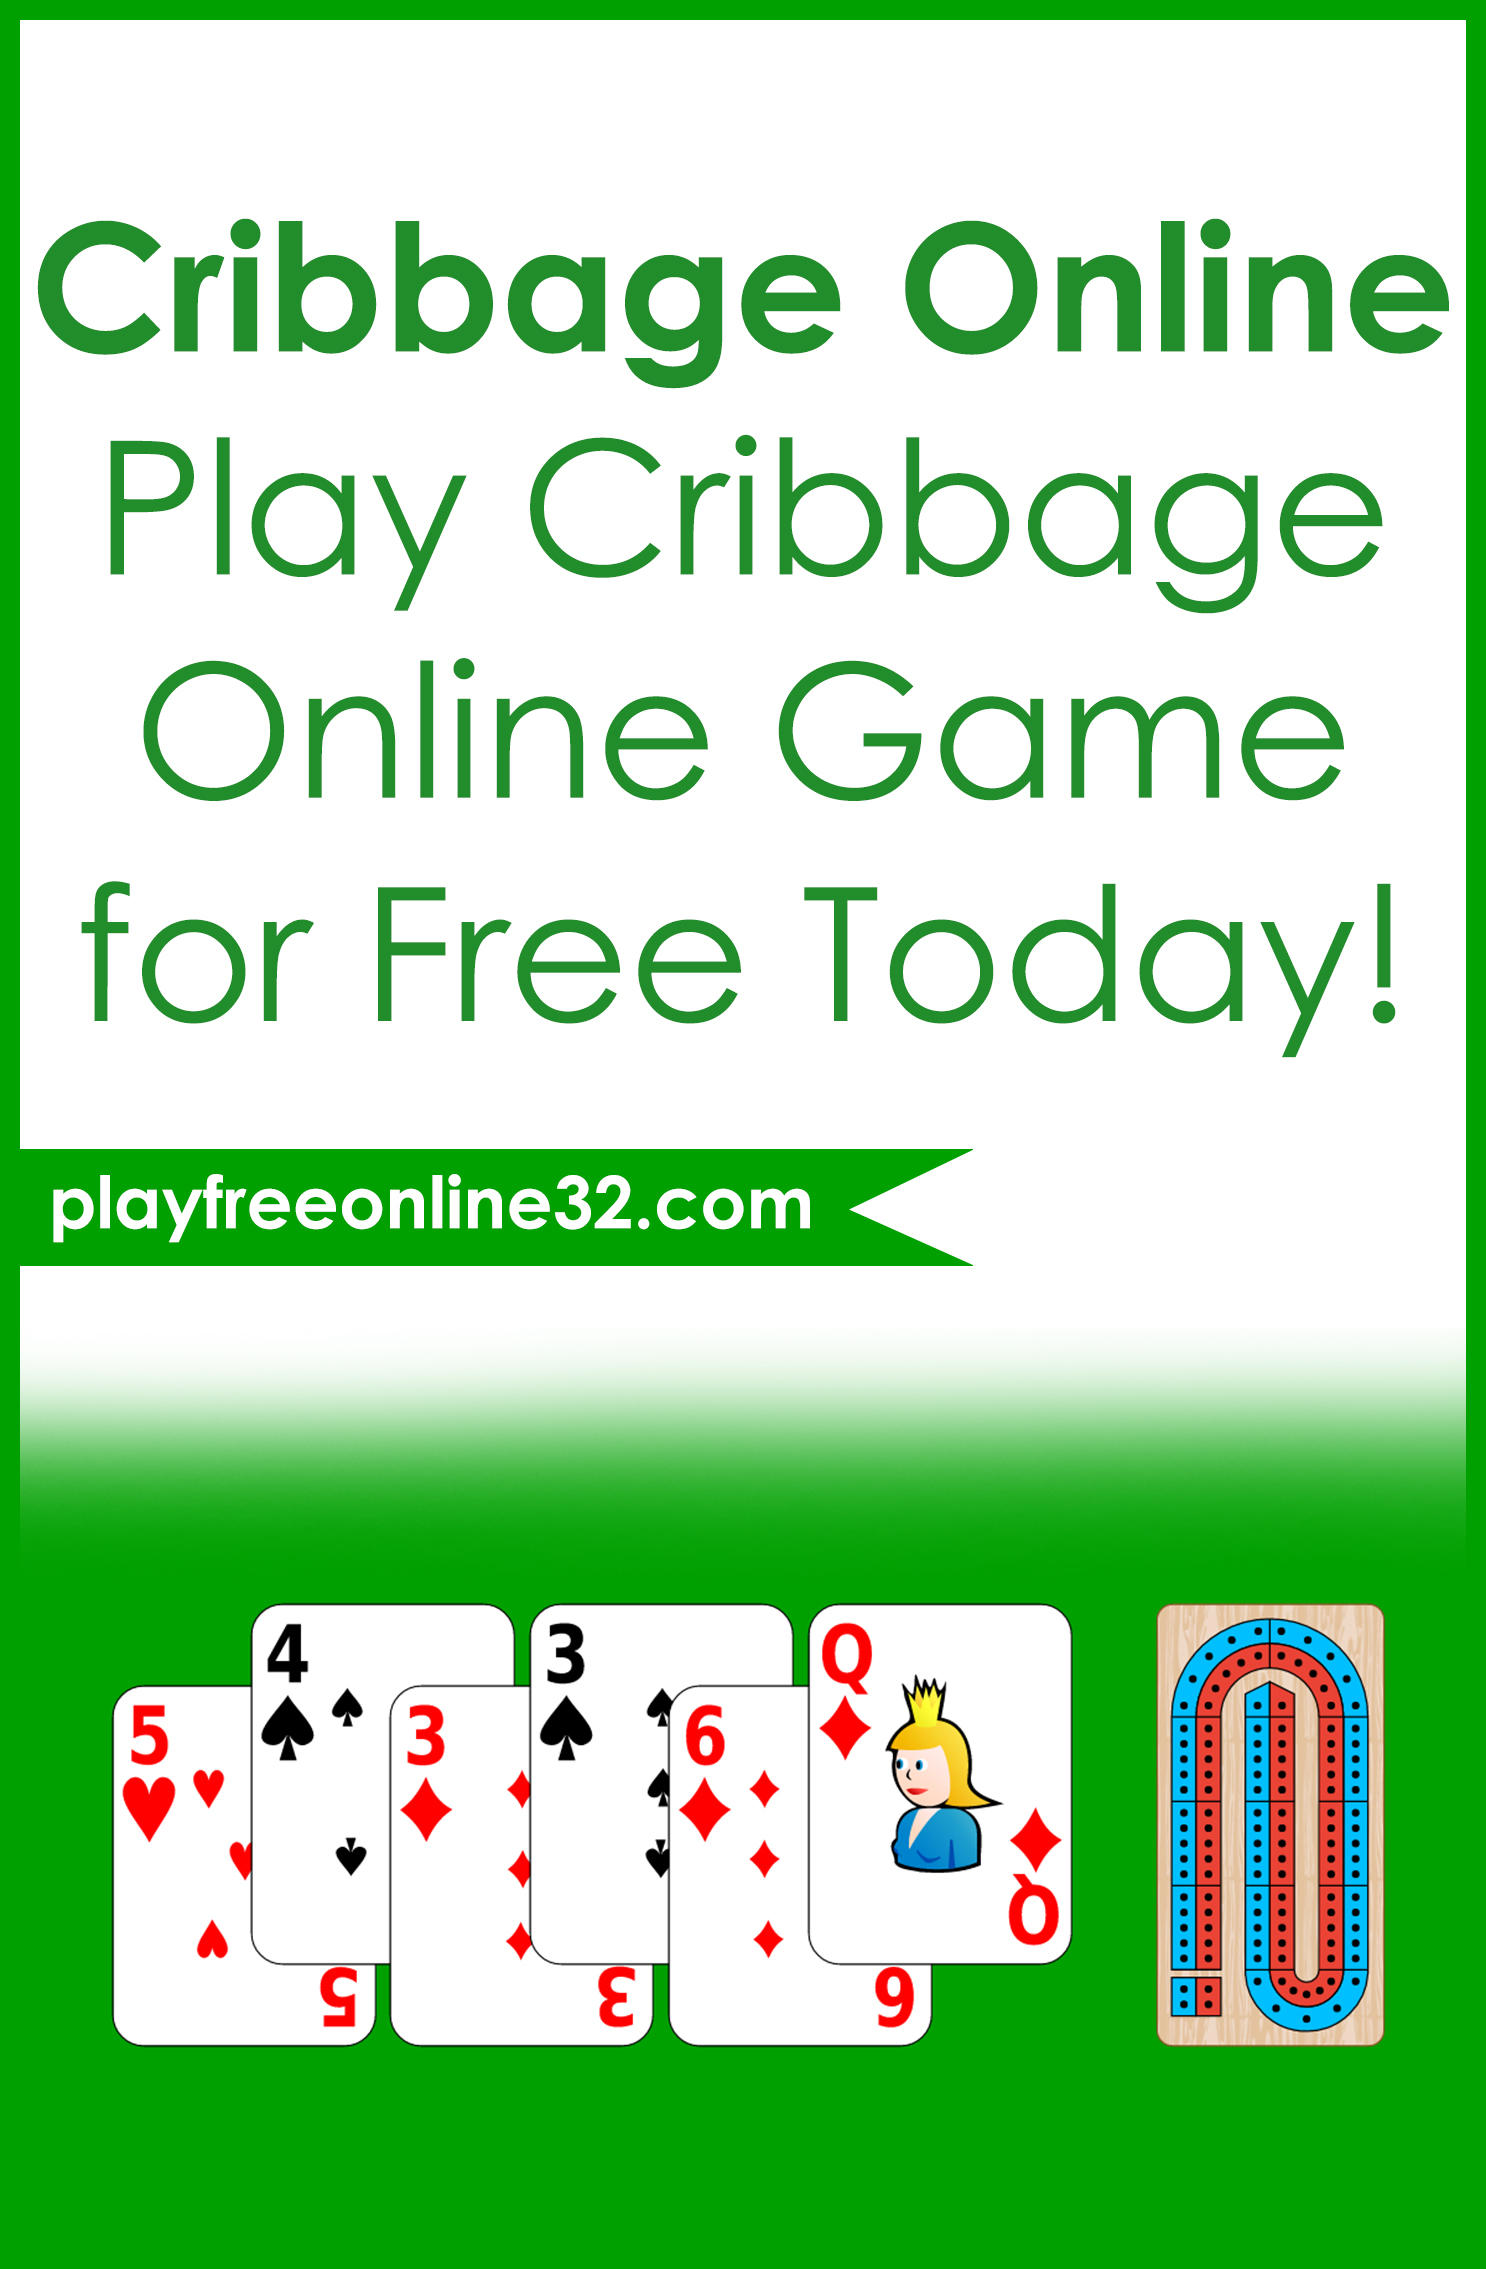 Cribbage Online • Play Cribbage Online Game for Free Today!